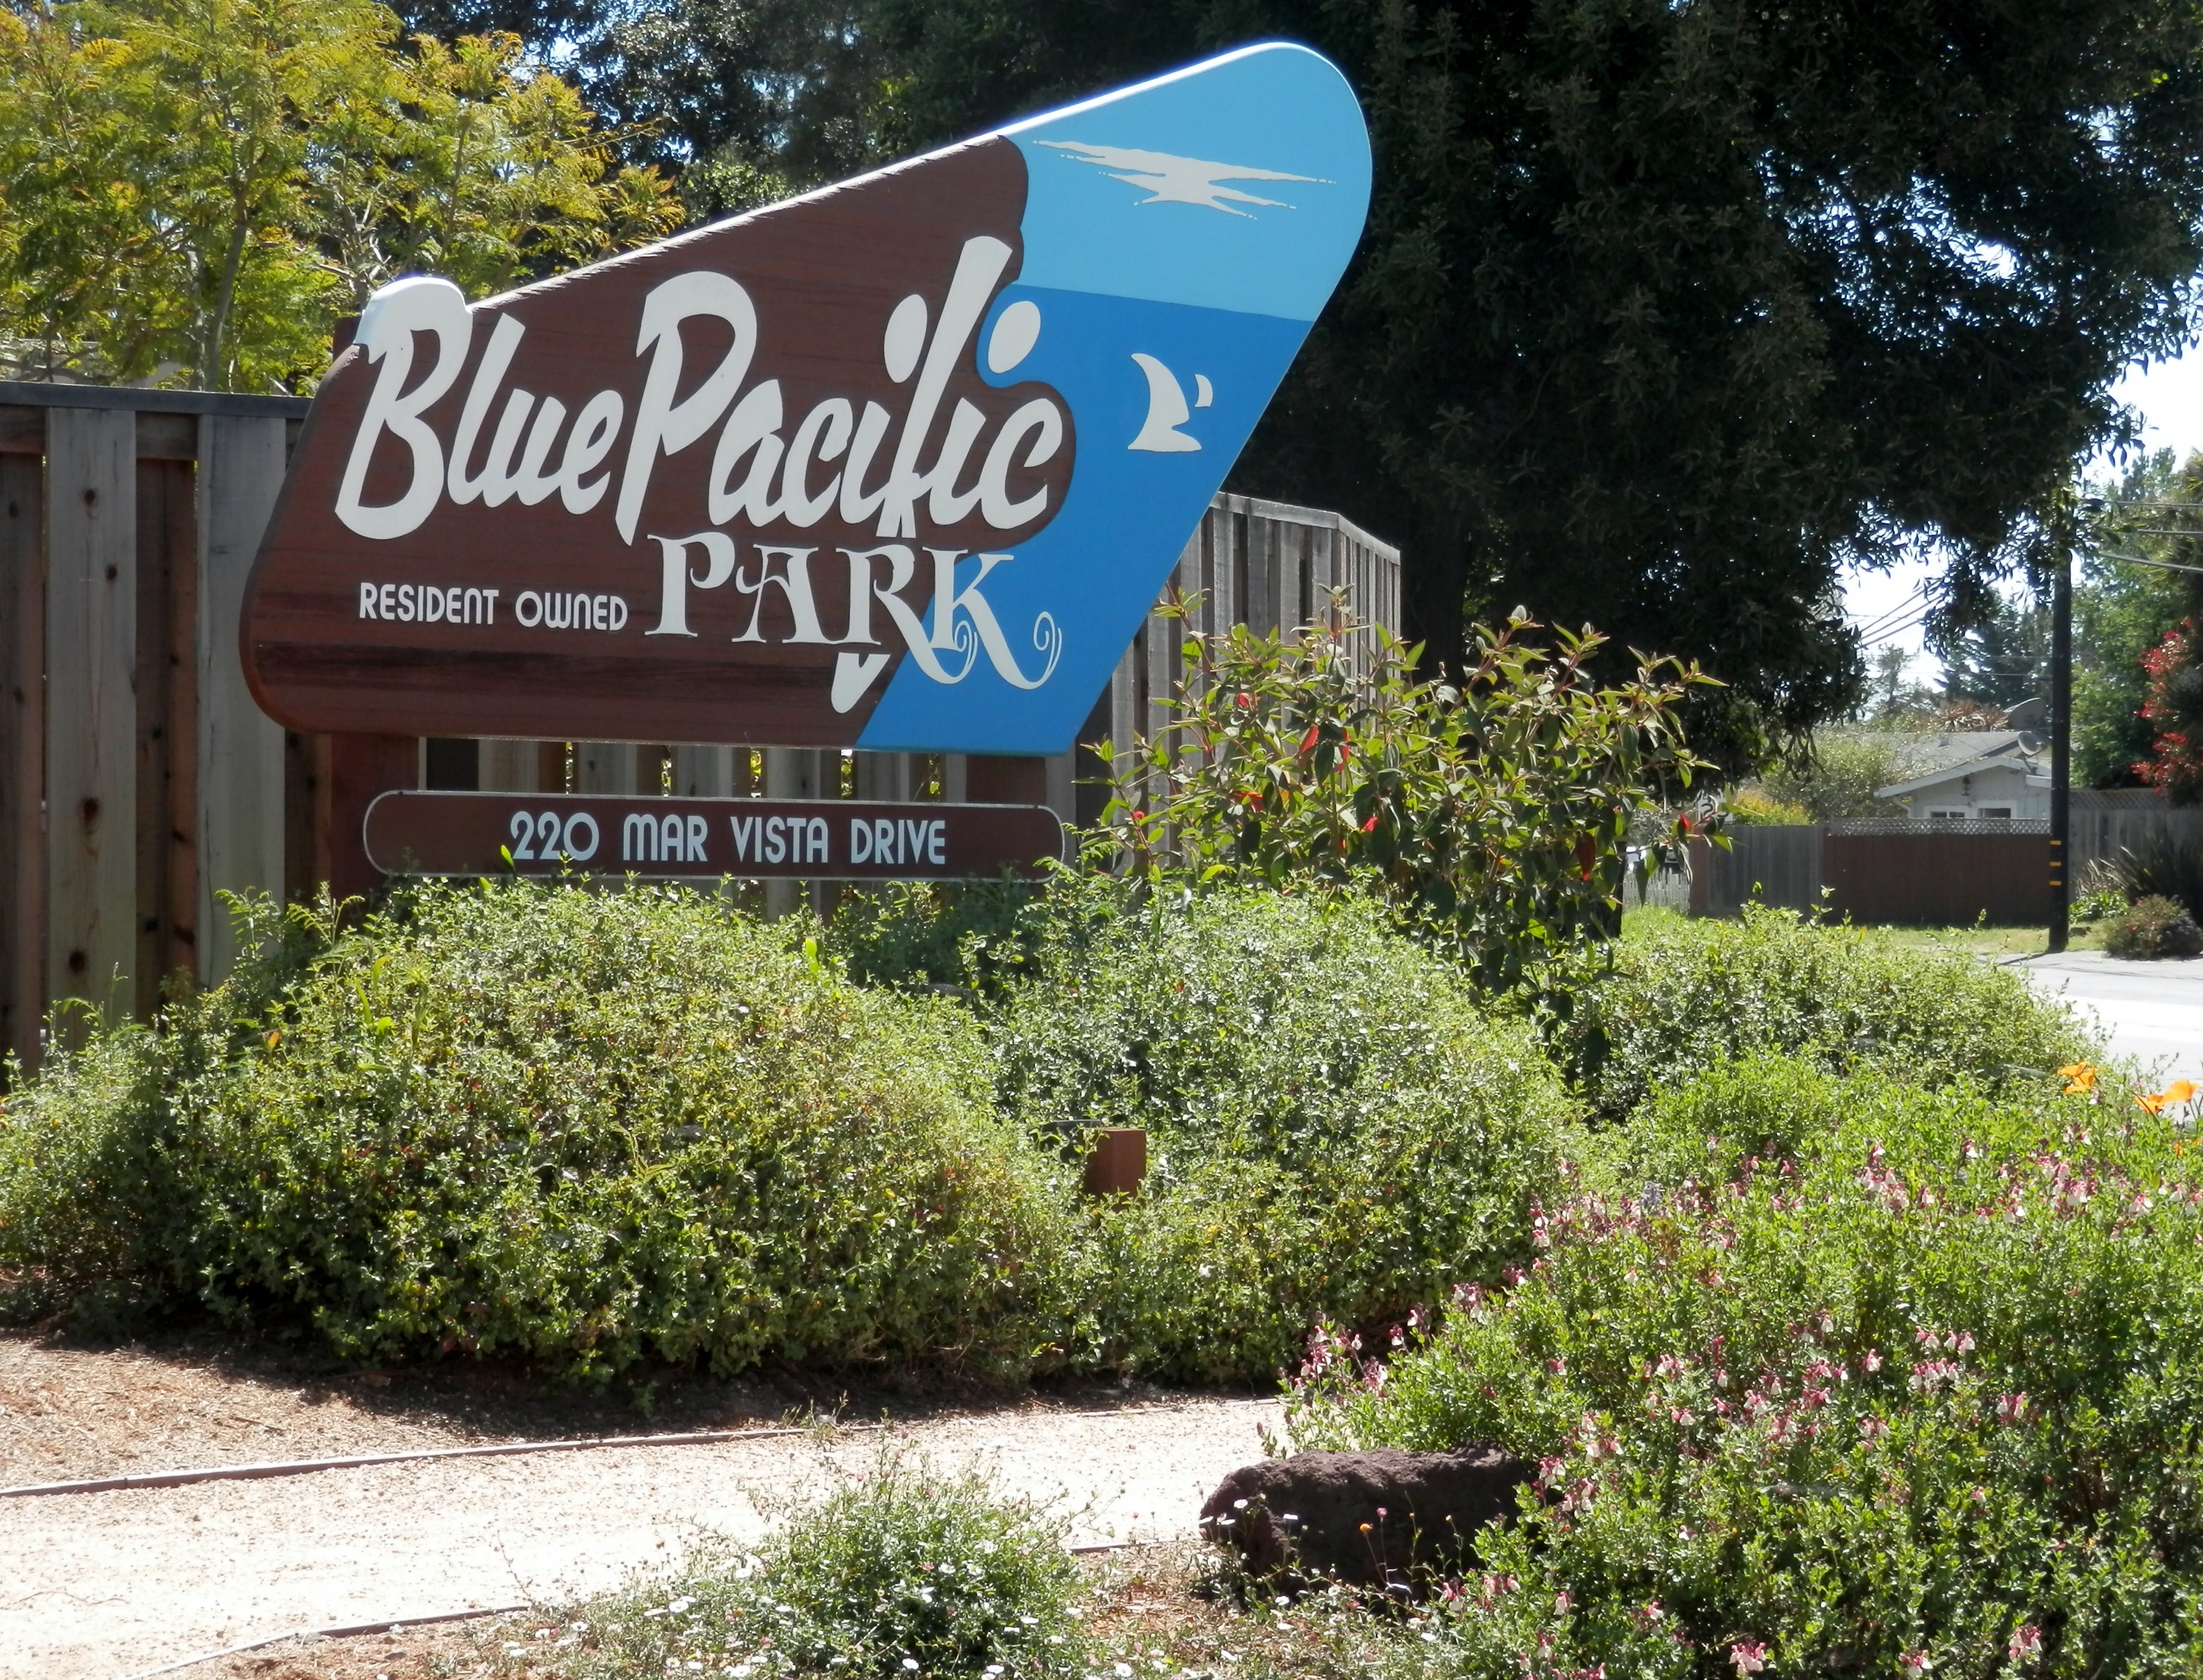 Blue Pacific #92, 220 Mar Vista Drive - Quality Homes on hawaii mobile homes, summit mobile homes, imperial mobile homes, clark mobile homes, renton mobile homes, town and country mobile homes, rio mobile homes, houston mobile homes, parkway mobile homes, mexico mobile homes, columbia mobile homes, california mobile homes, touch mobile homes, southwest mobile homes, ferry mobile homes, marshall mobile homes, southern mobile homes, franklin mobile homes, redmond mobile homes, el dorado mobile homes,